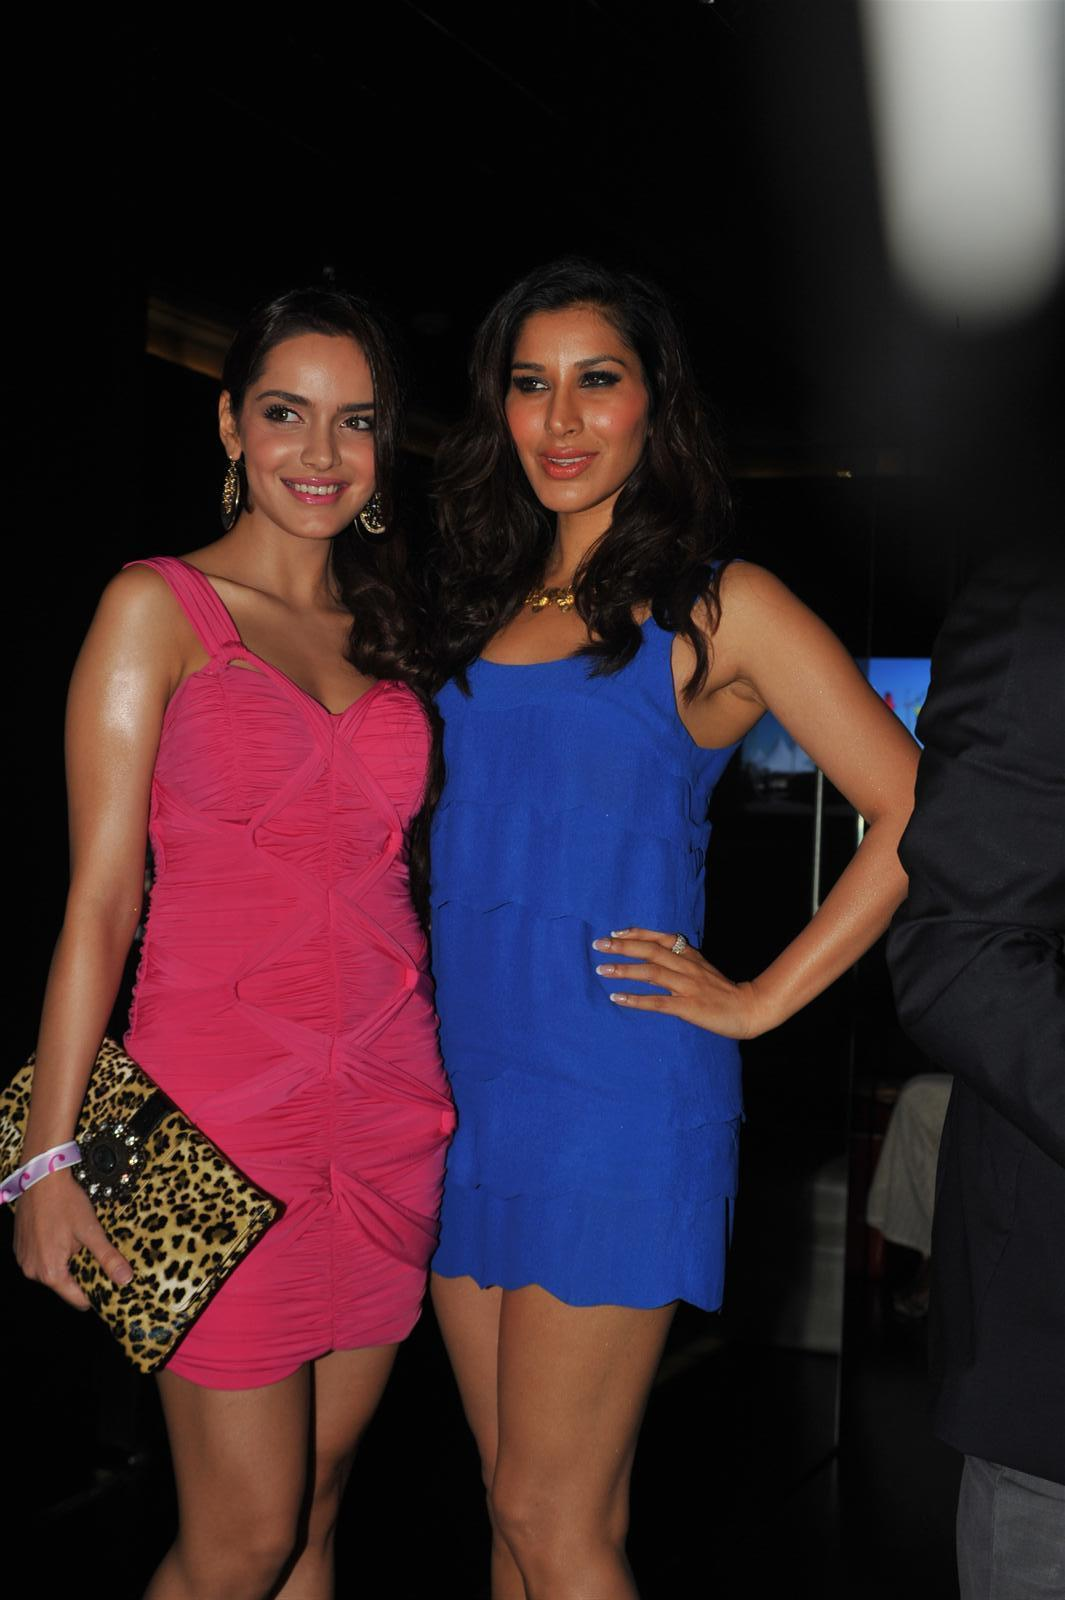 shazahn padamsee spicy in pink dress at event photo gallery